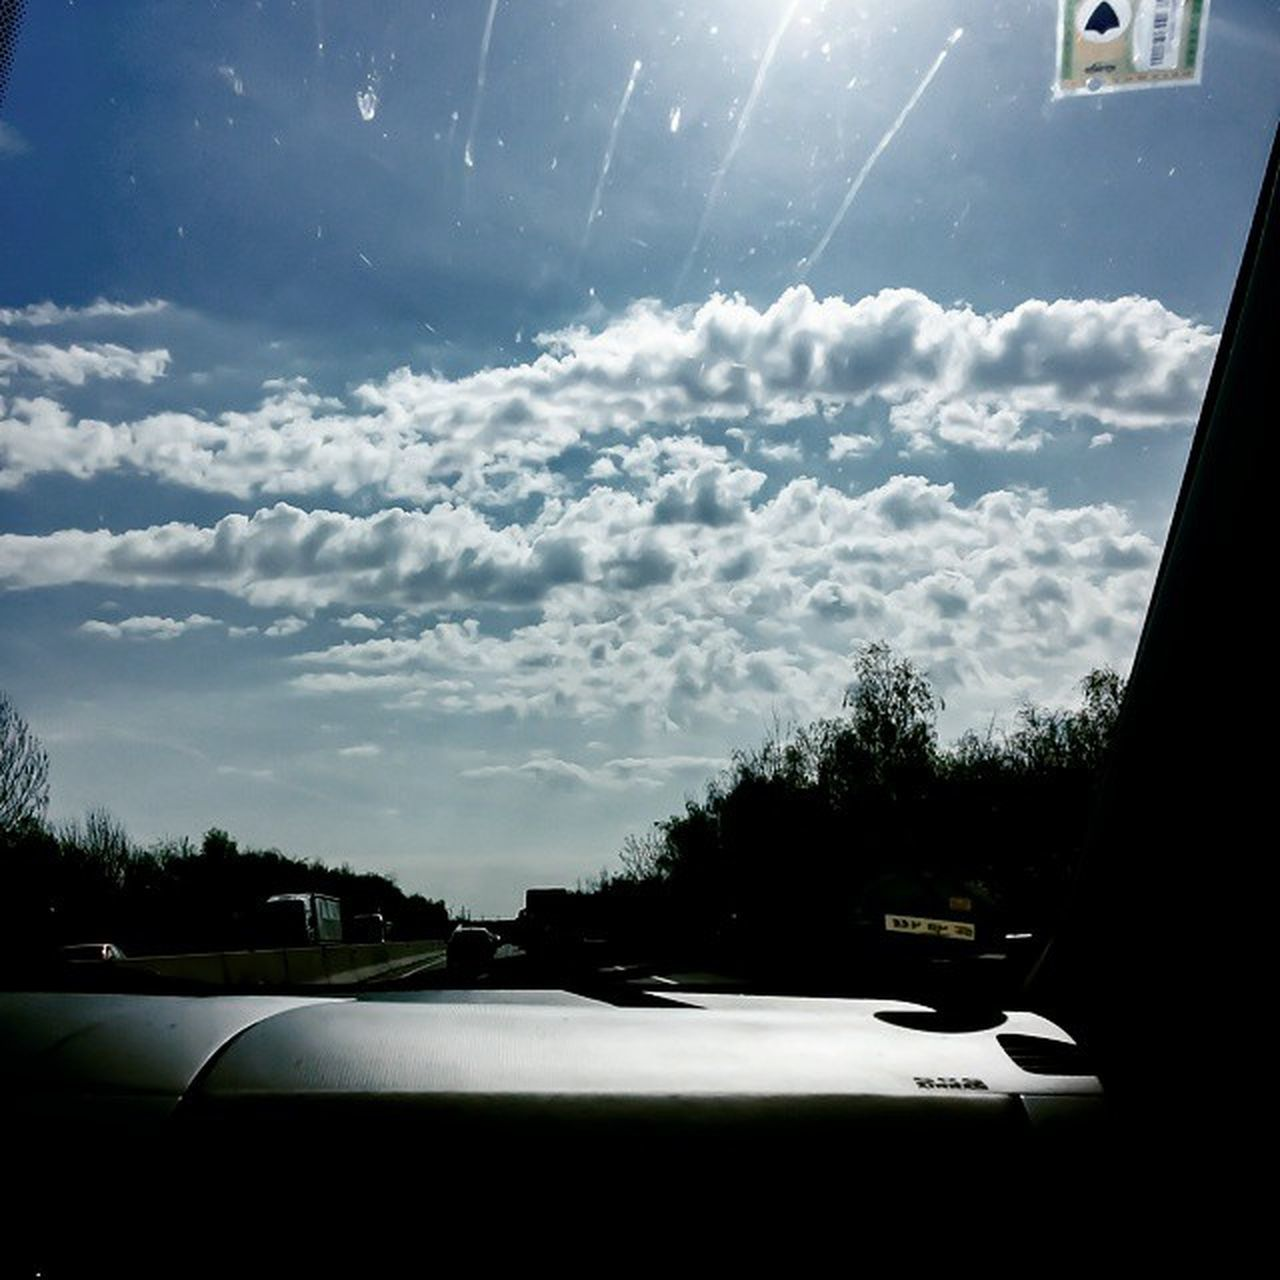 car, transportation, land vehicle, car interior, vehicle interior, cloud - sky, windshield, mode of transport, sky, car point of view, road, day, no people, nature, tree, dashboard, beauty in nature, outdoors